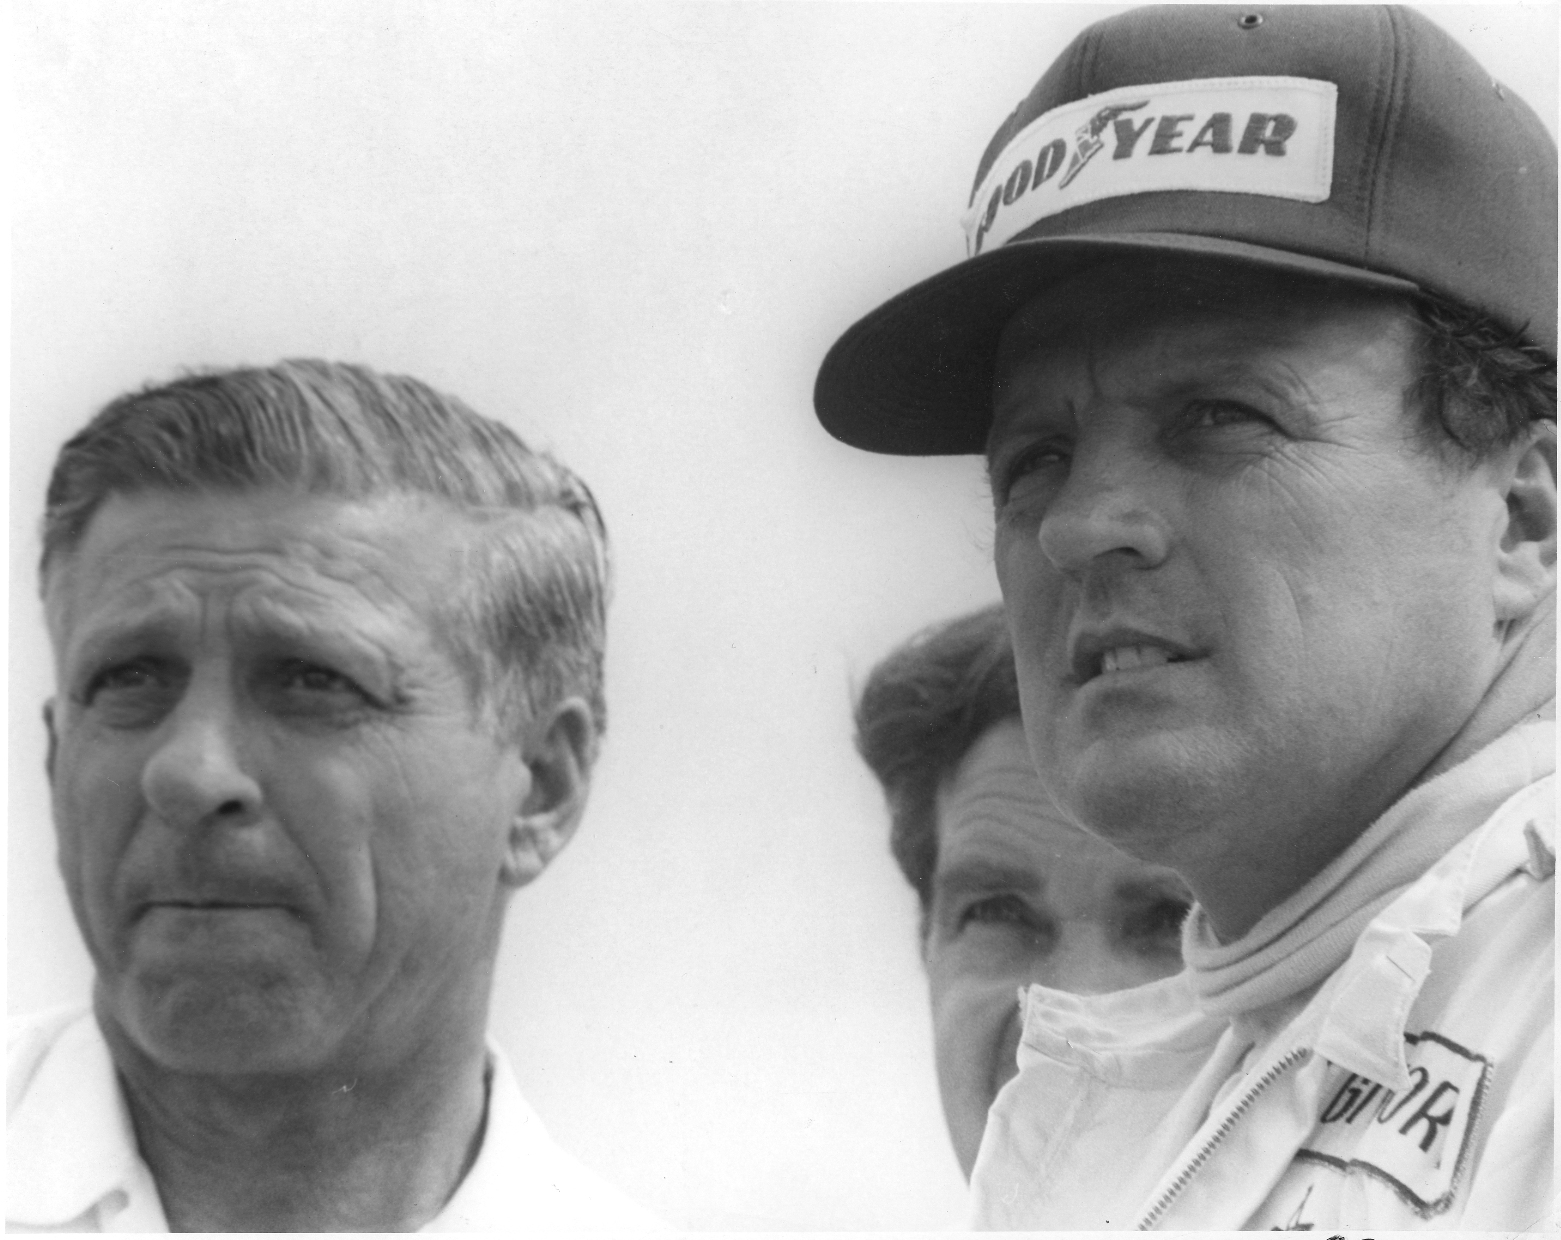 Tony Foyt and son A.J.